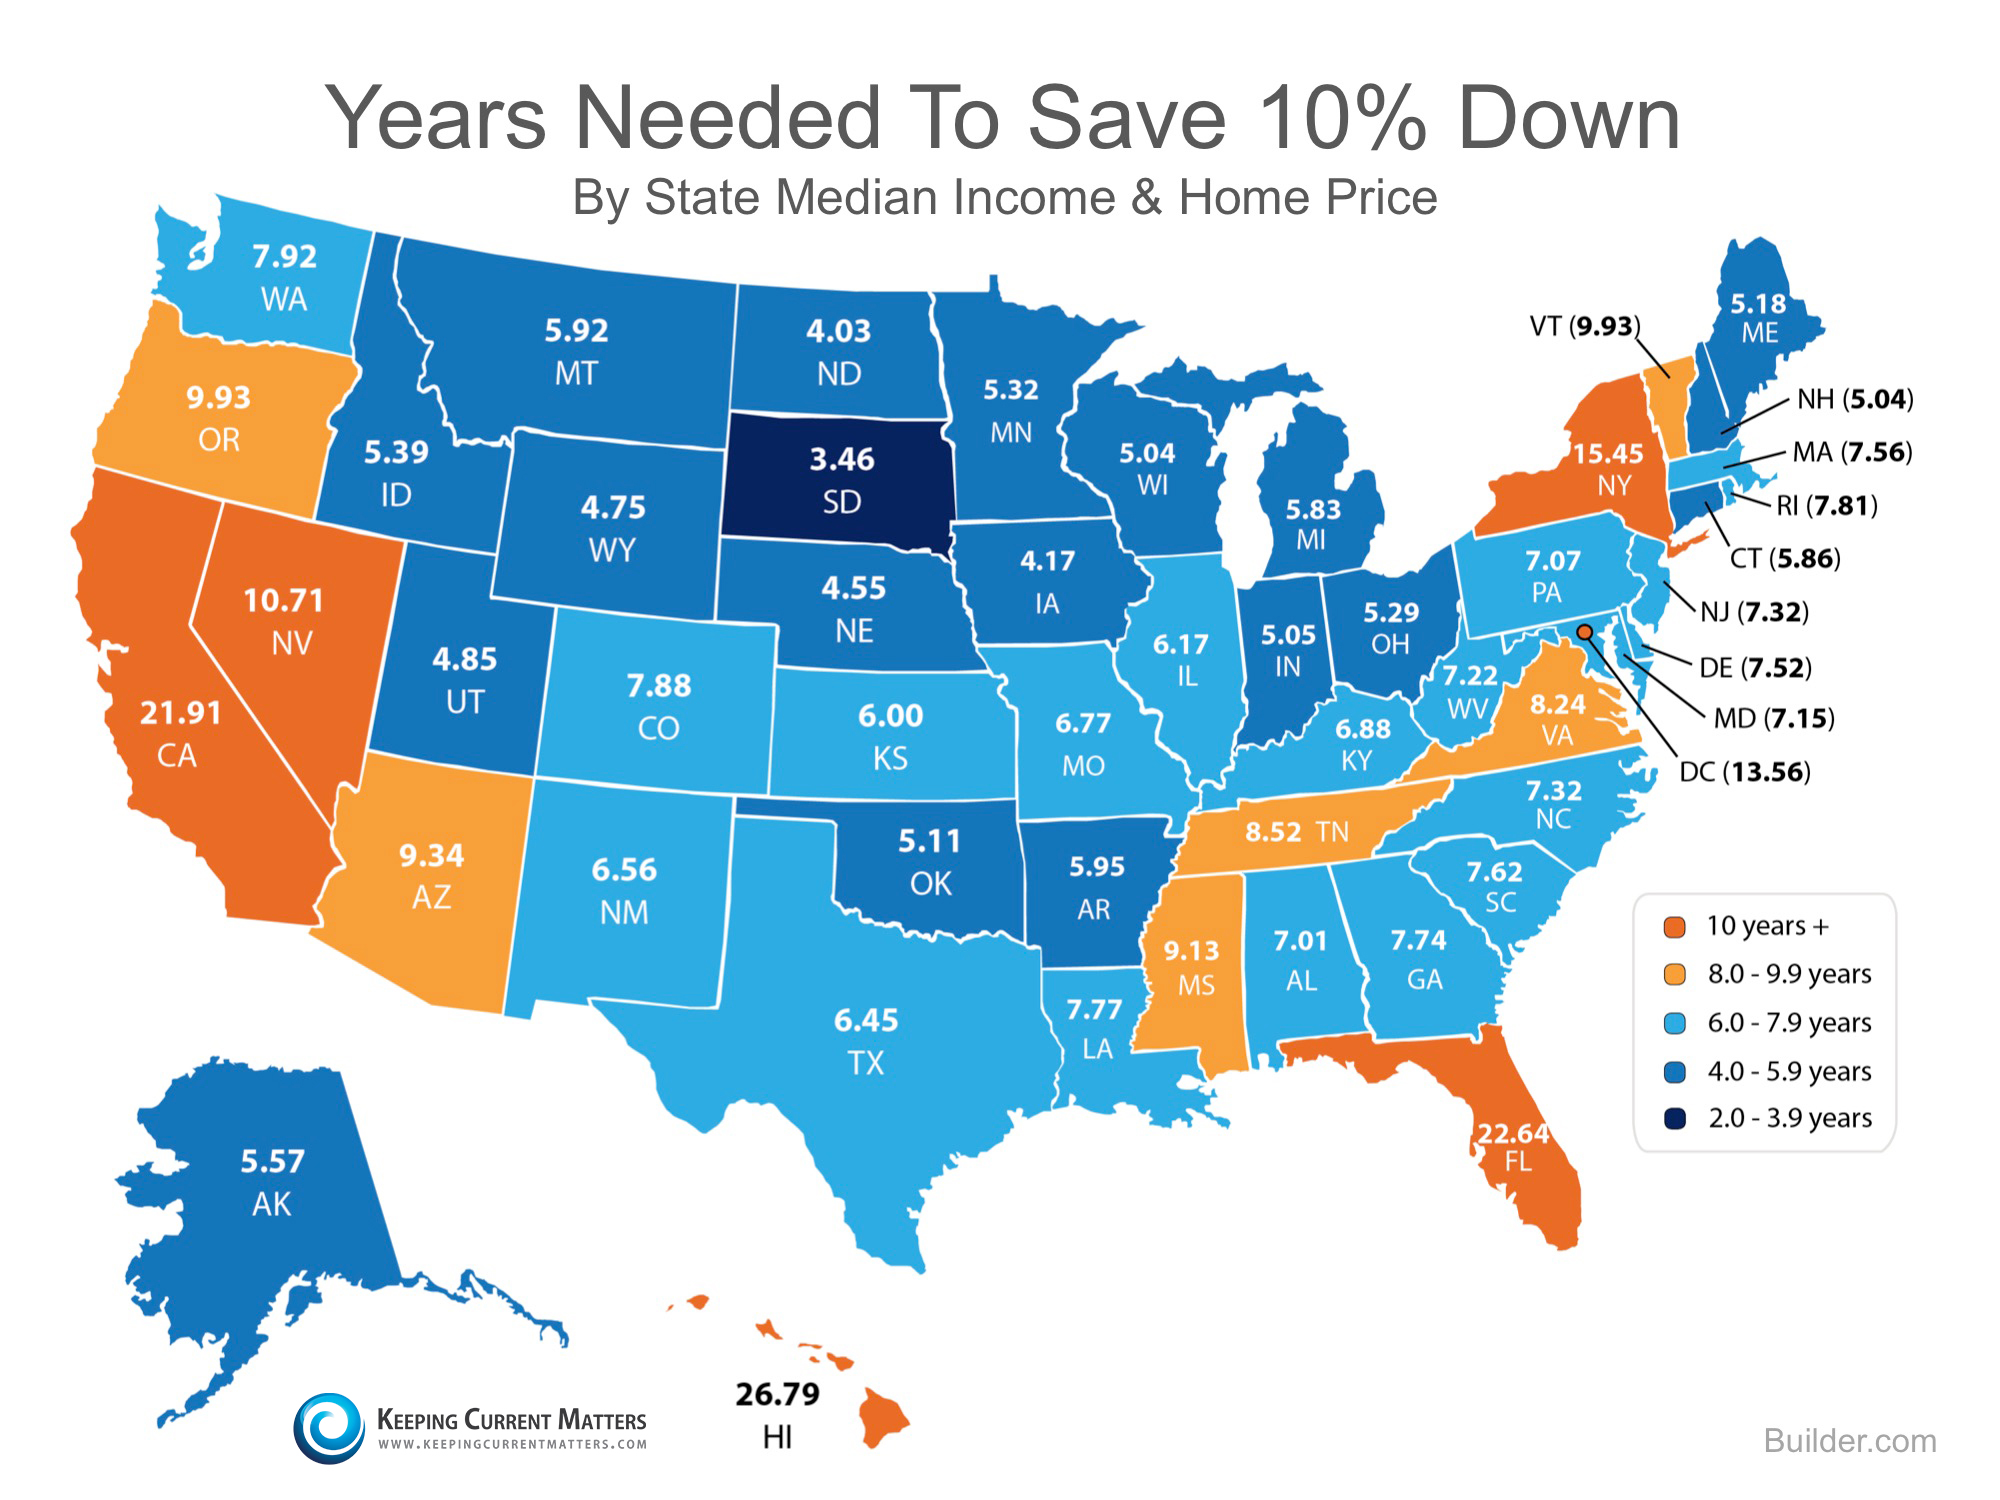 Years Needed to Save 10% Down | Keeping Current Matters